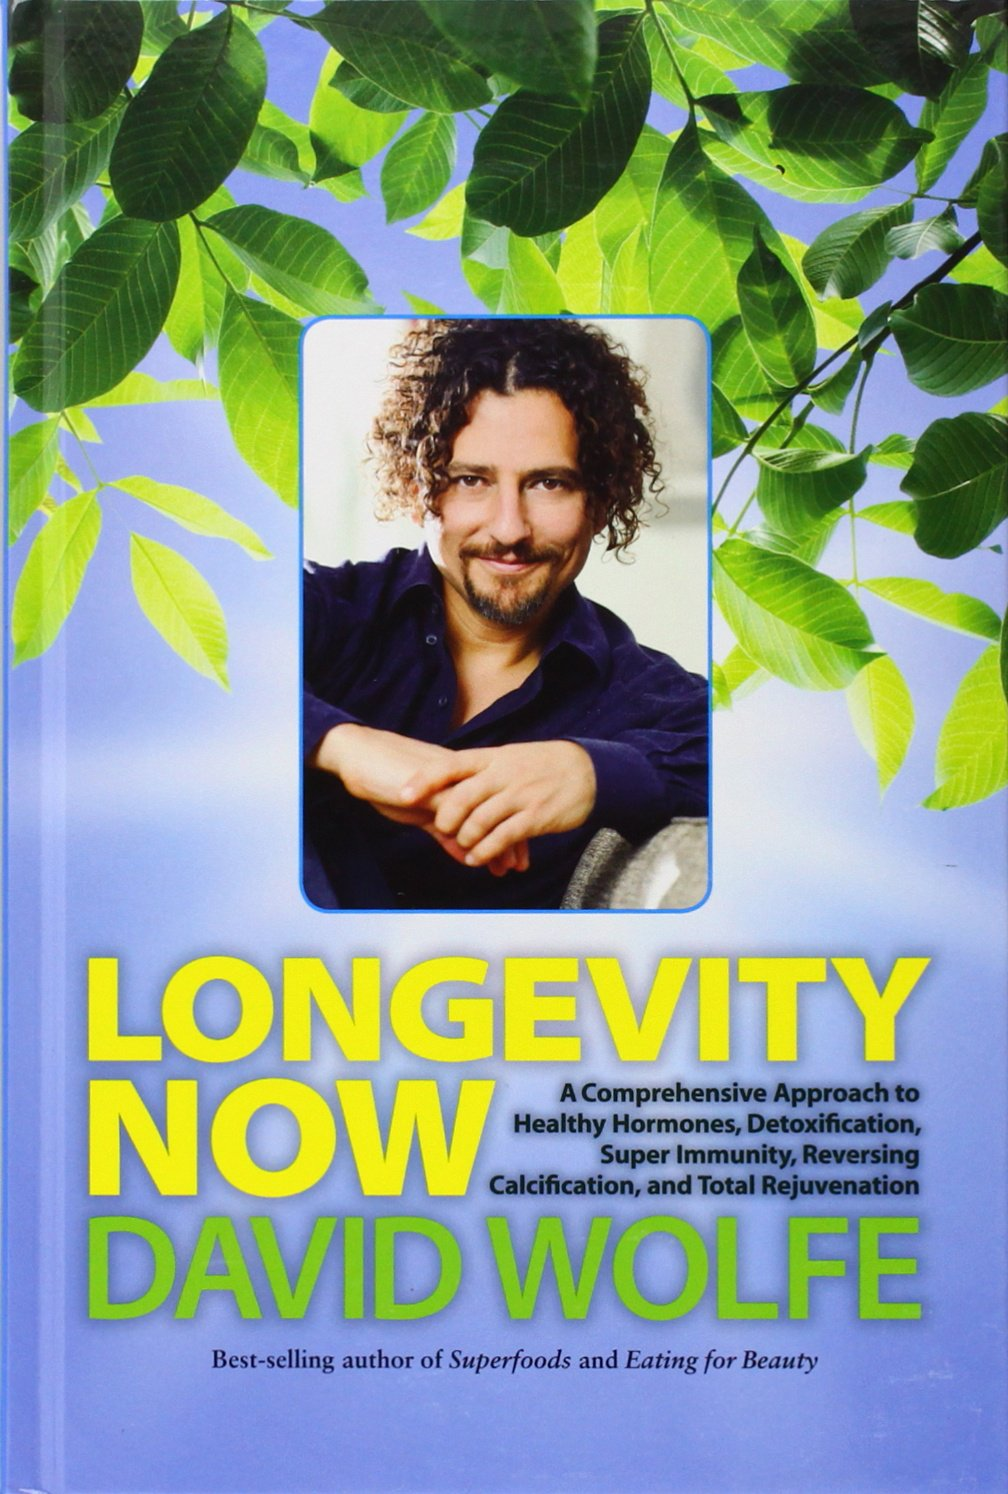 Longevity NOW (David Wolfe)